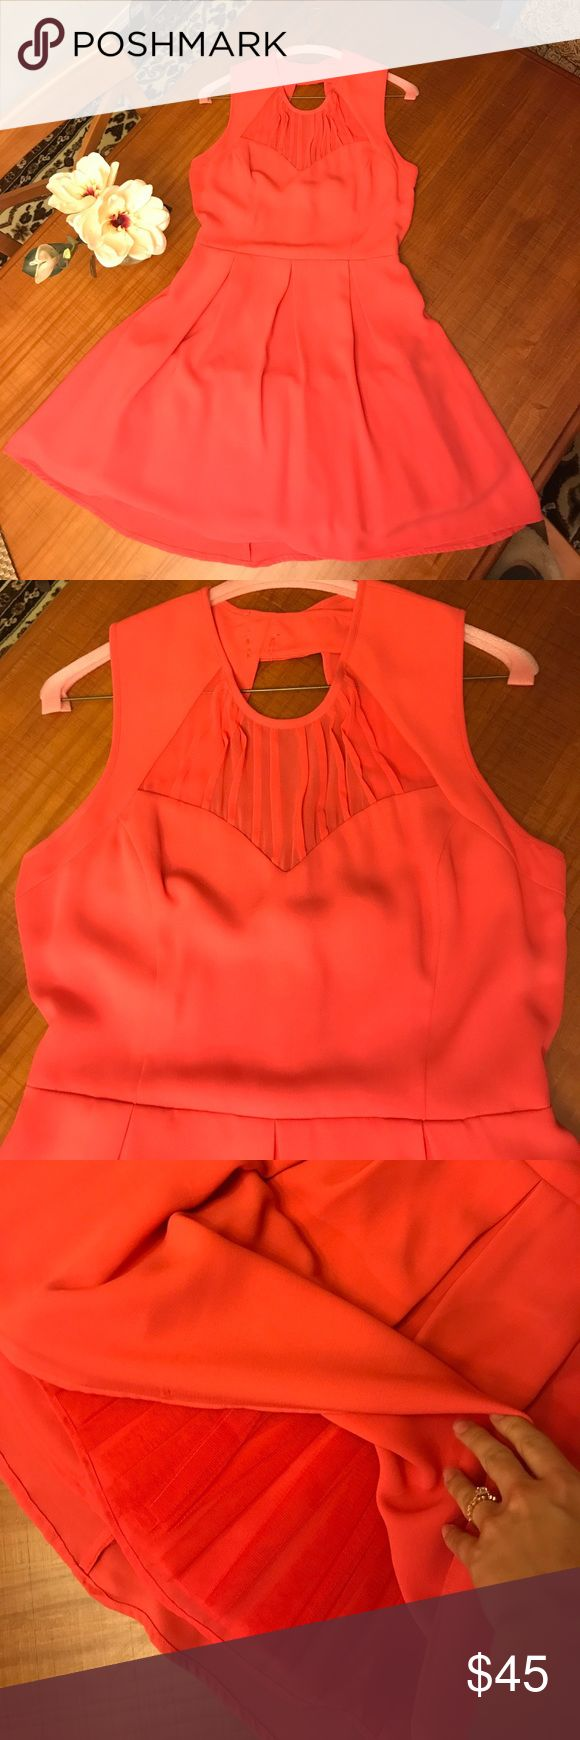 Coral bridesmaid dress Coral bridesmaid's dress. Sheer panel on chest and tulle under skirt for volume. Great condition. Tag says size 12 but was altered to fit a size medium. Oasis Dresses